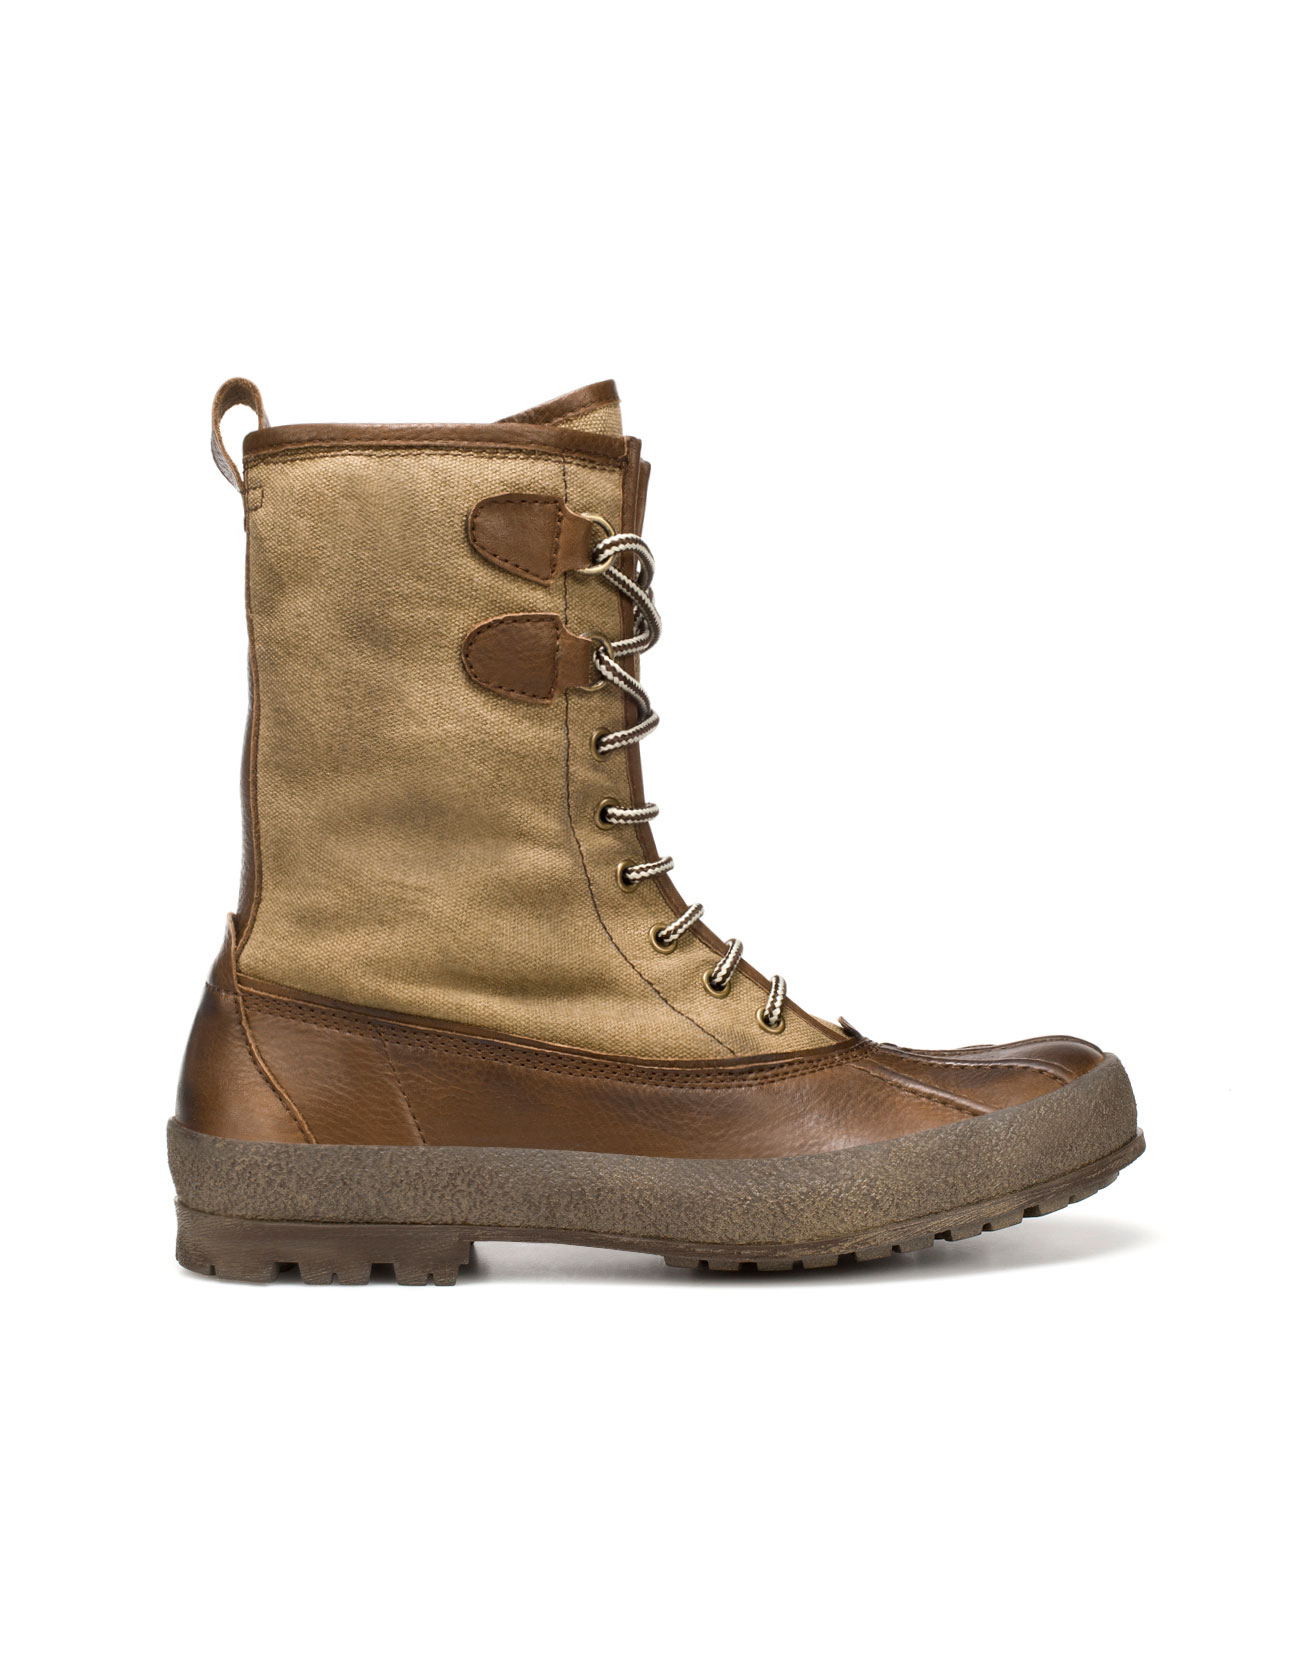 Mens Field Boots - Cr Boot